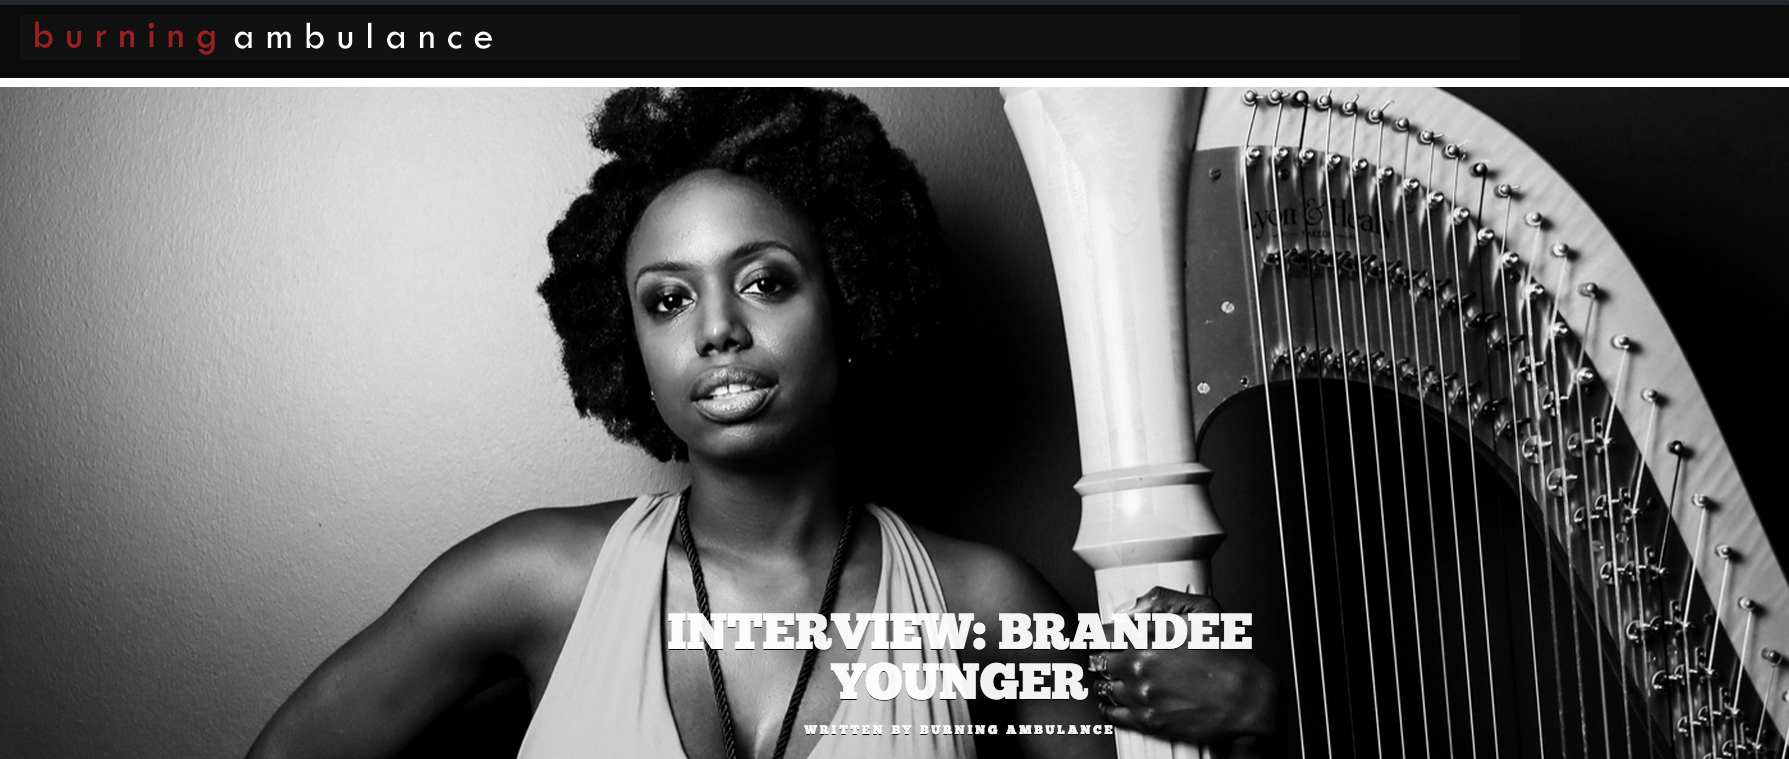 Interview: Brandee Younger on Burning Ambulance